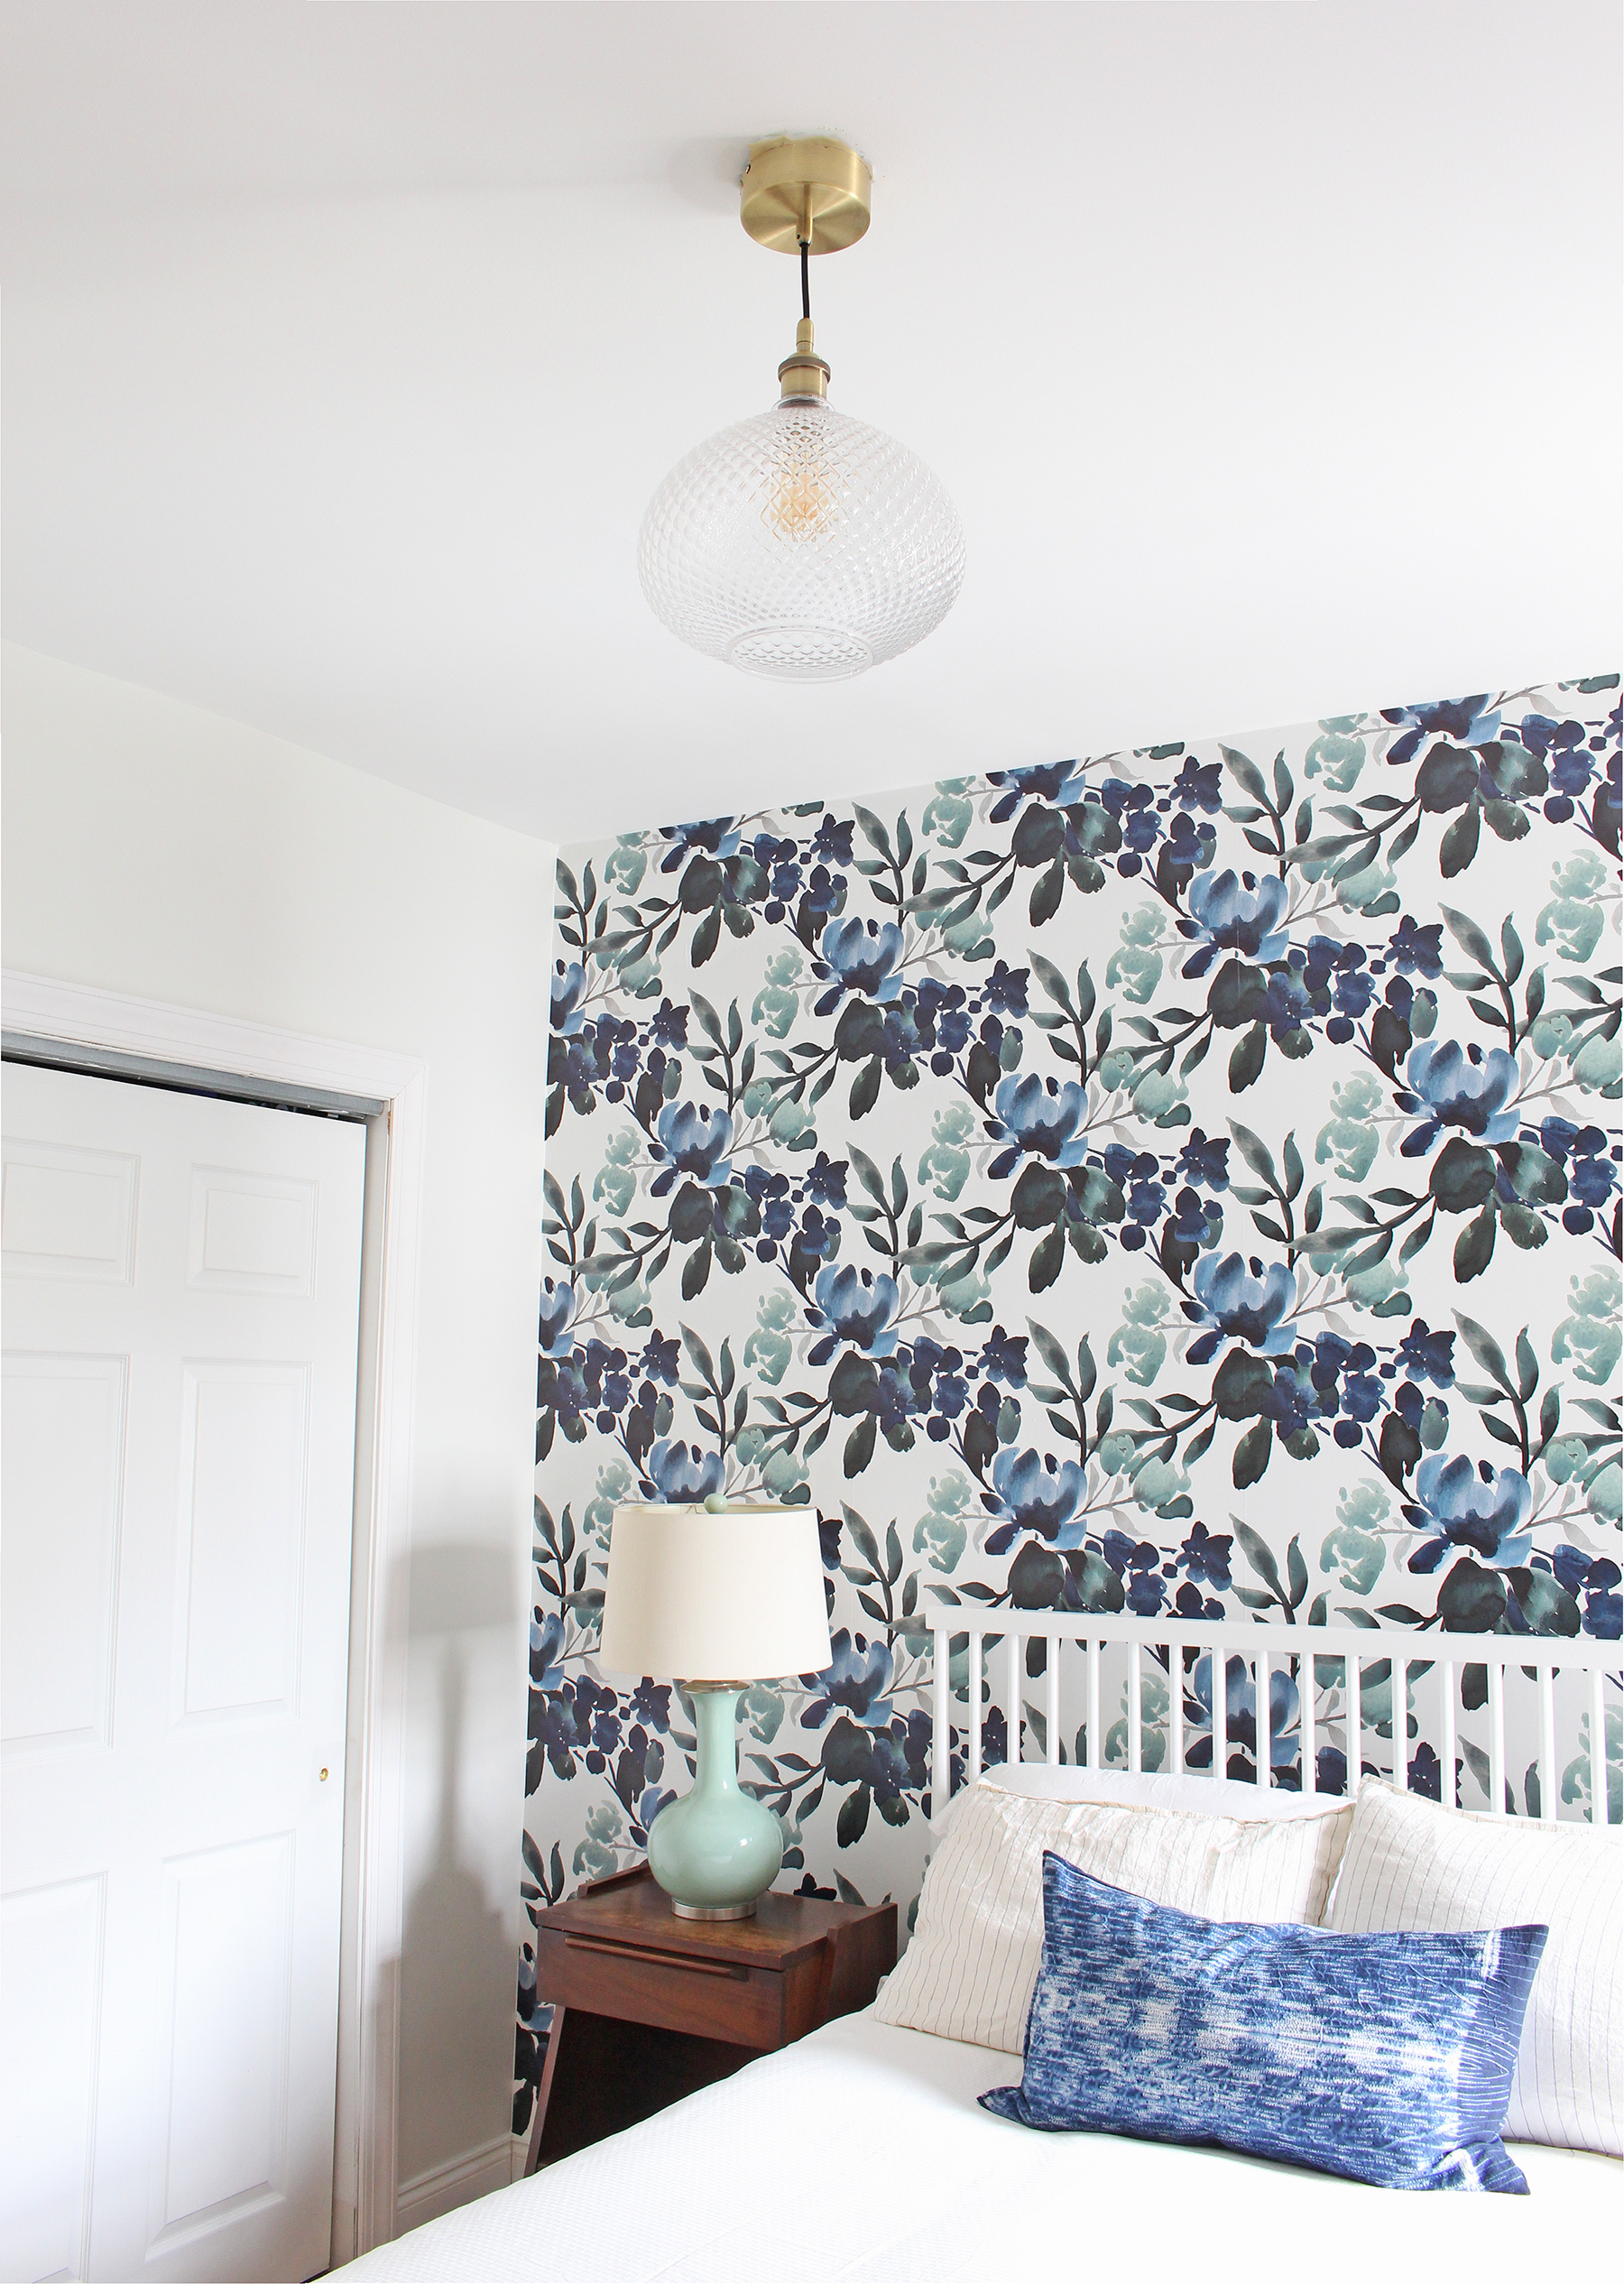 Catch a glimpse of the progress in this One Room Challenge Guest Bedroom. This week, a new cut glass pendant light from Lamps Plus went up! It's the perfect subtle, but unique touch to complement the blue and green floral wallpaper.